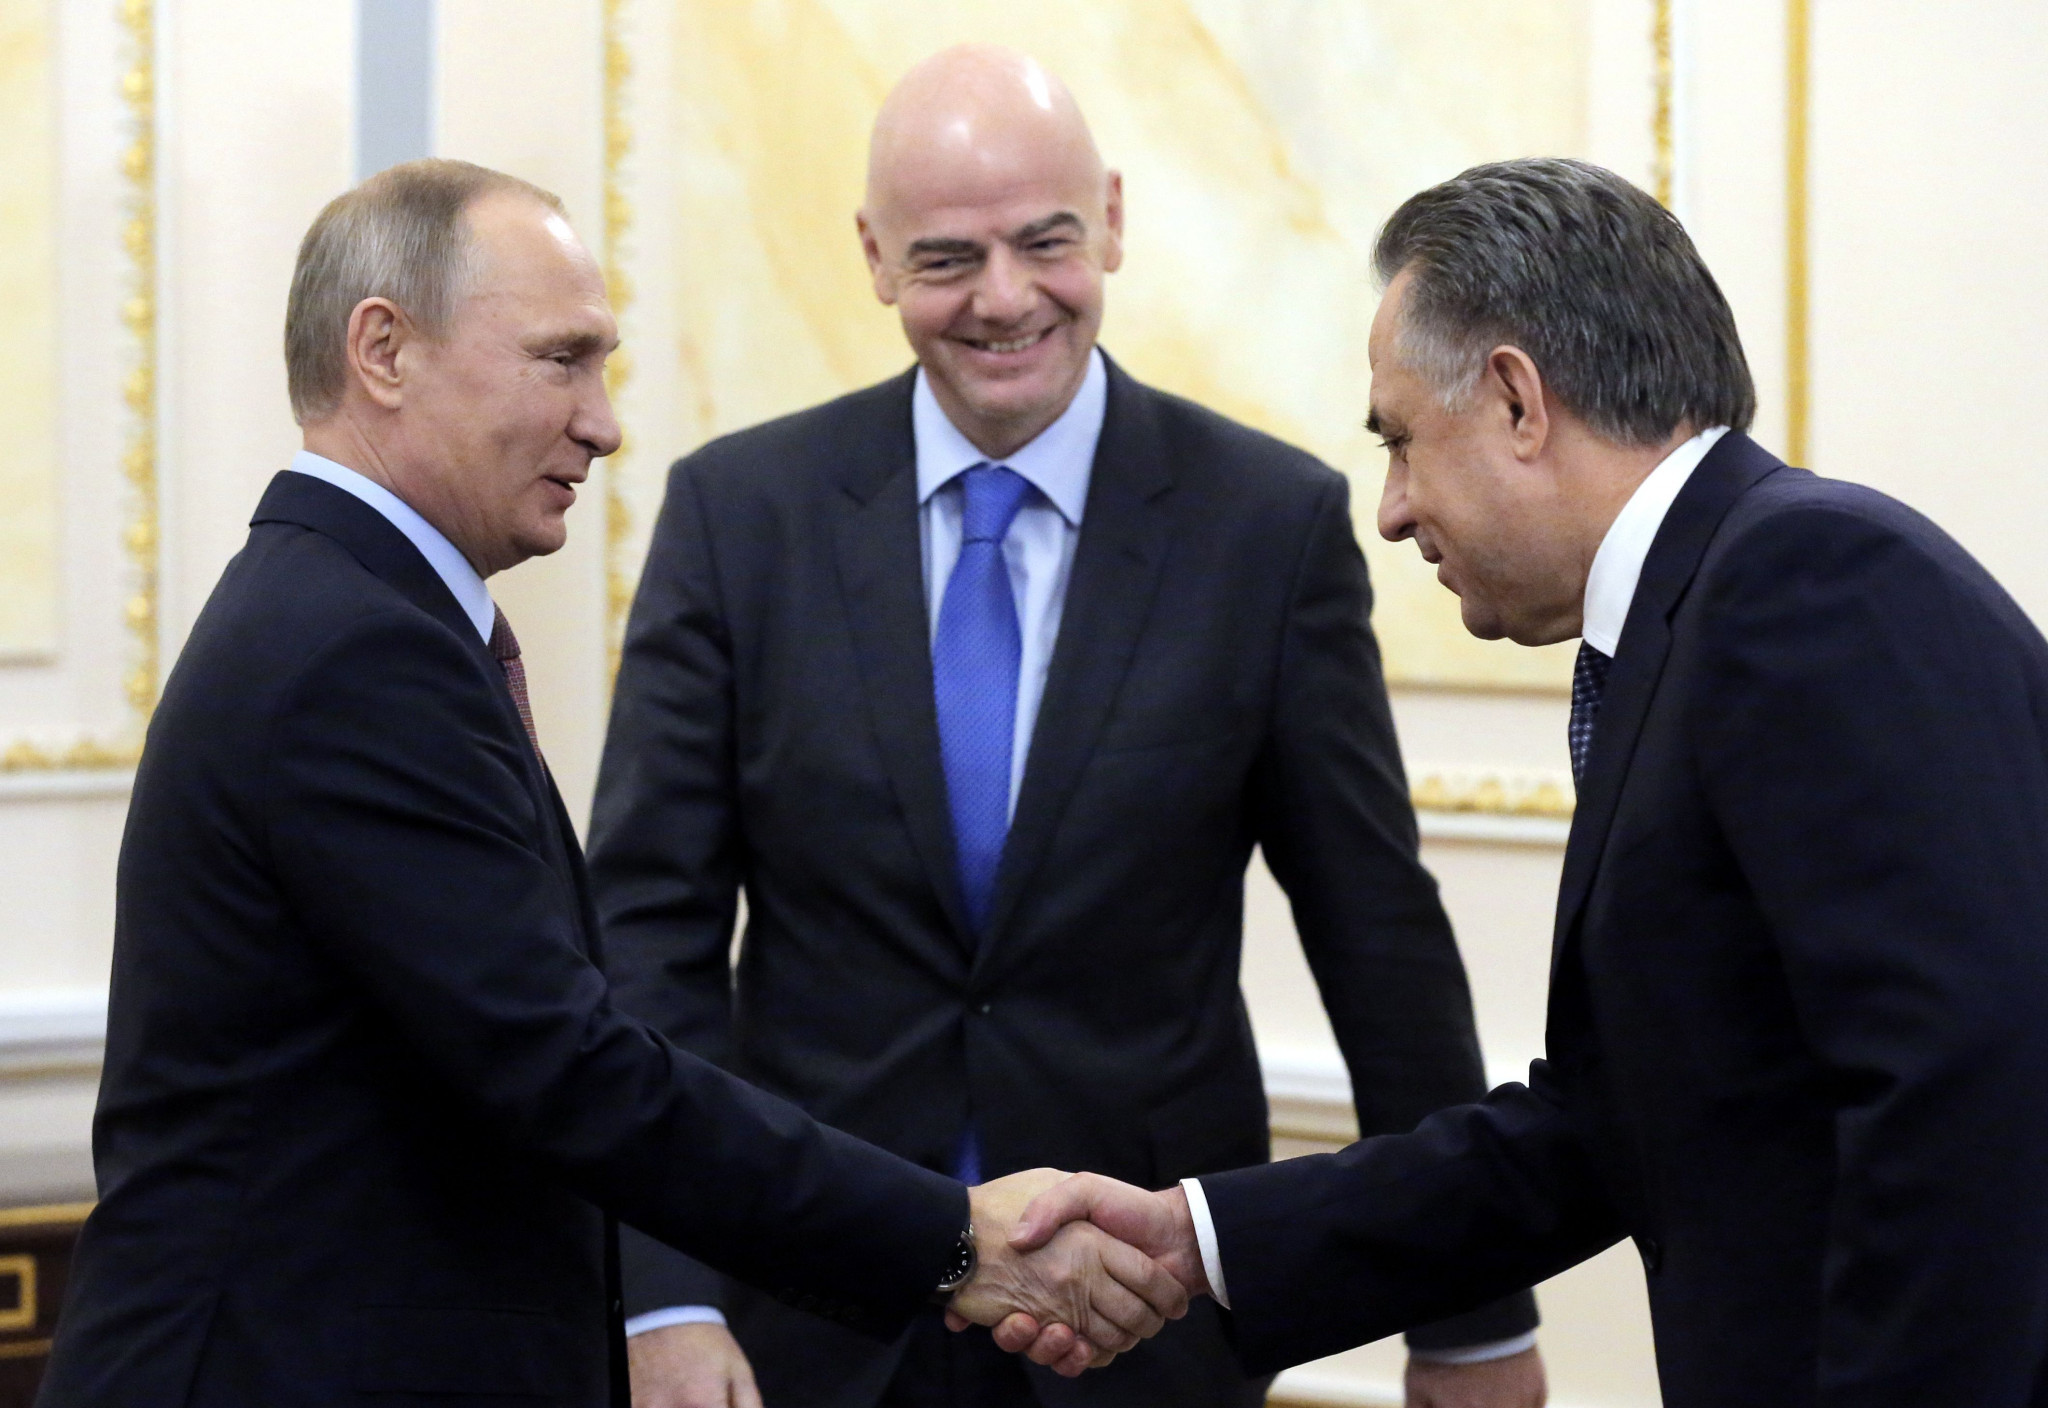 Vladimir Putin, left, and Vitaly Mutko, right, either side of FIFA President Gianni Infantino ©Getty Images